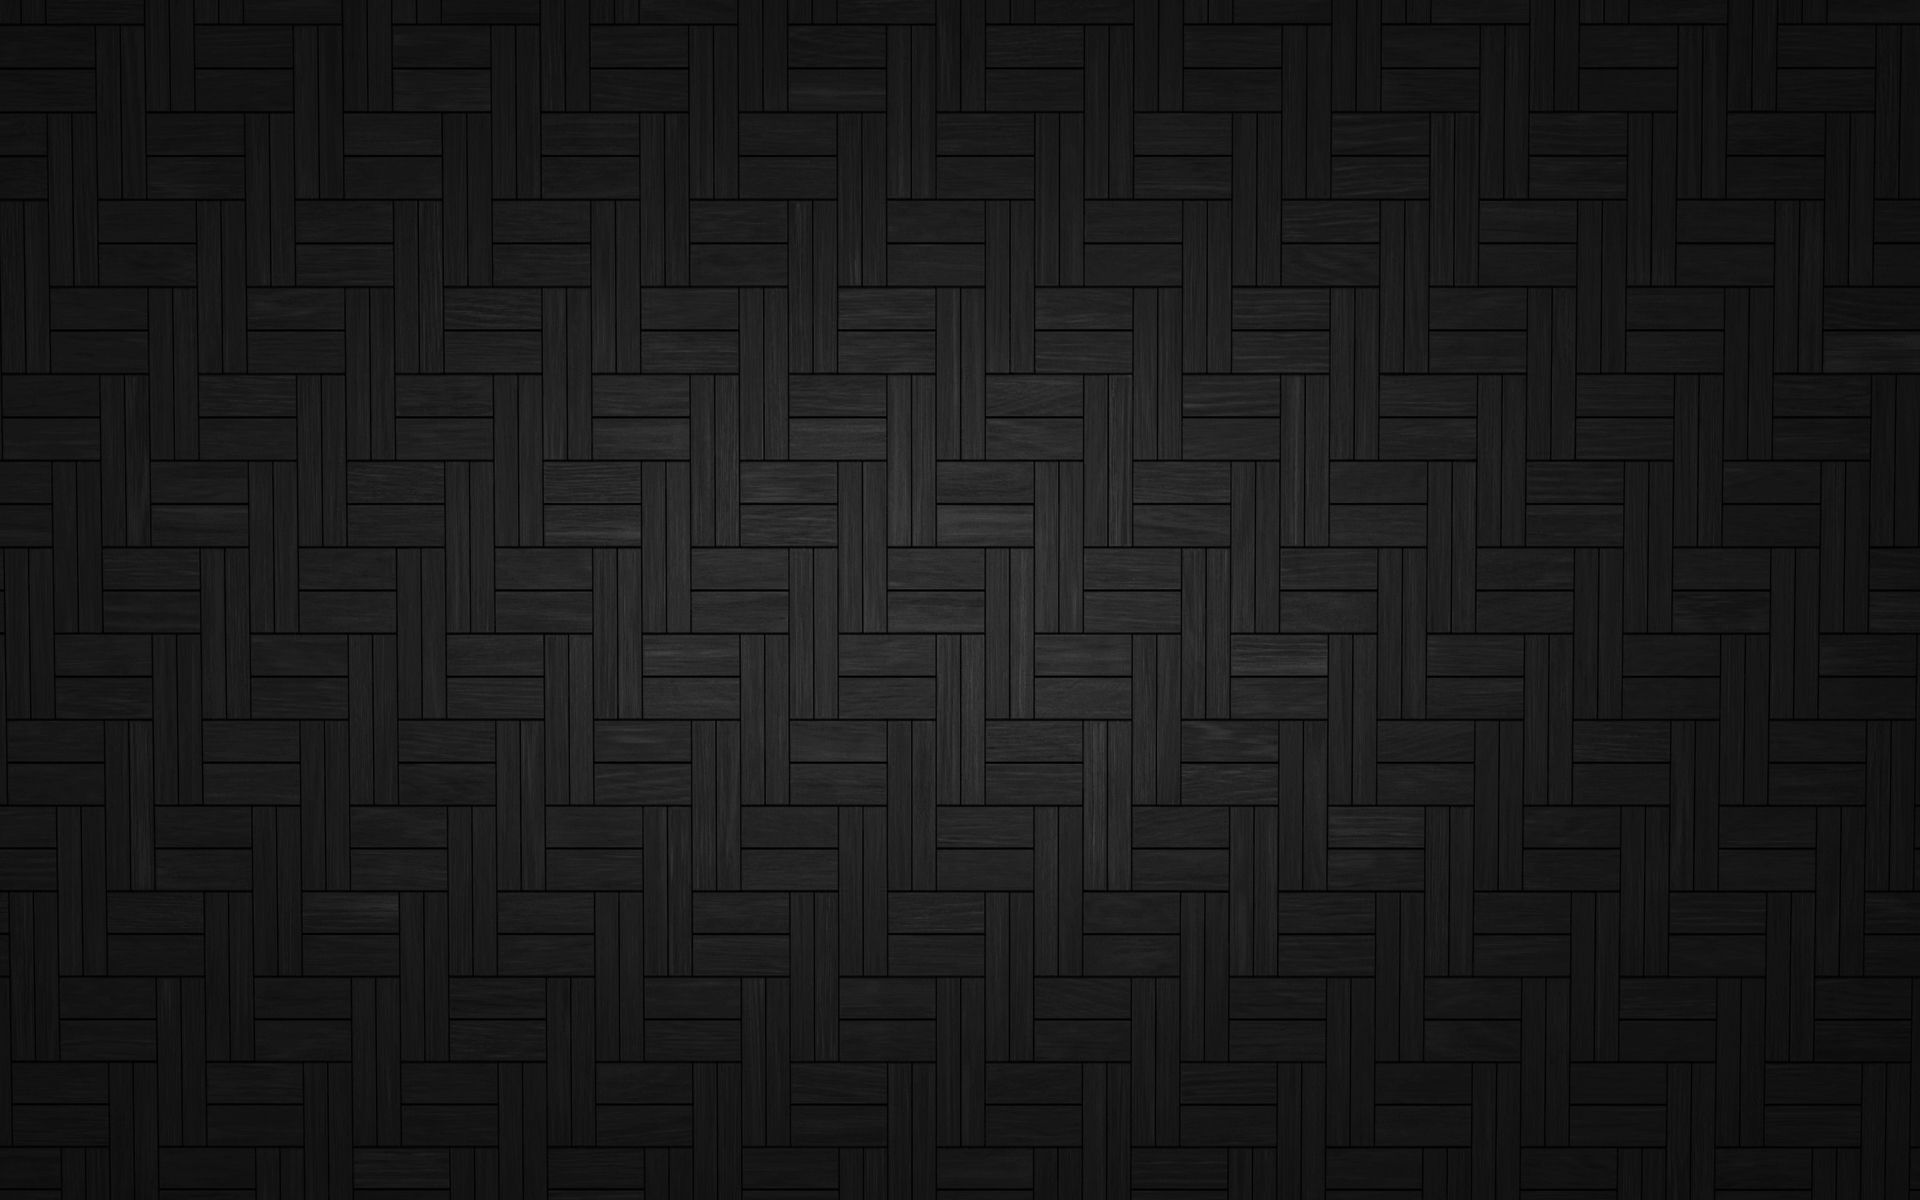 Black Background Abstract Best Wallpaper Hd Black Textured Wallpaper Black Hd Wallpaper Black Wallpaper